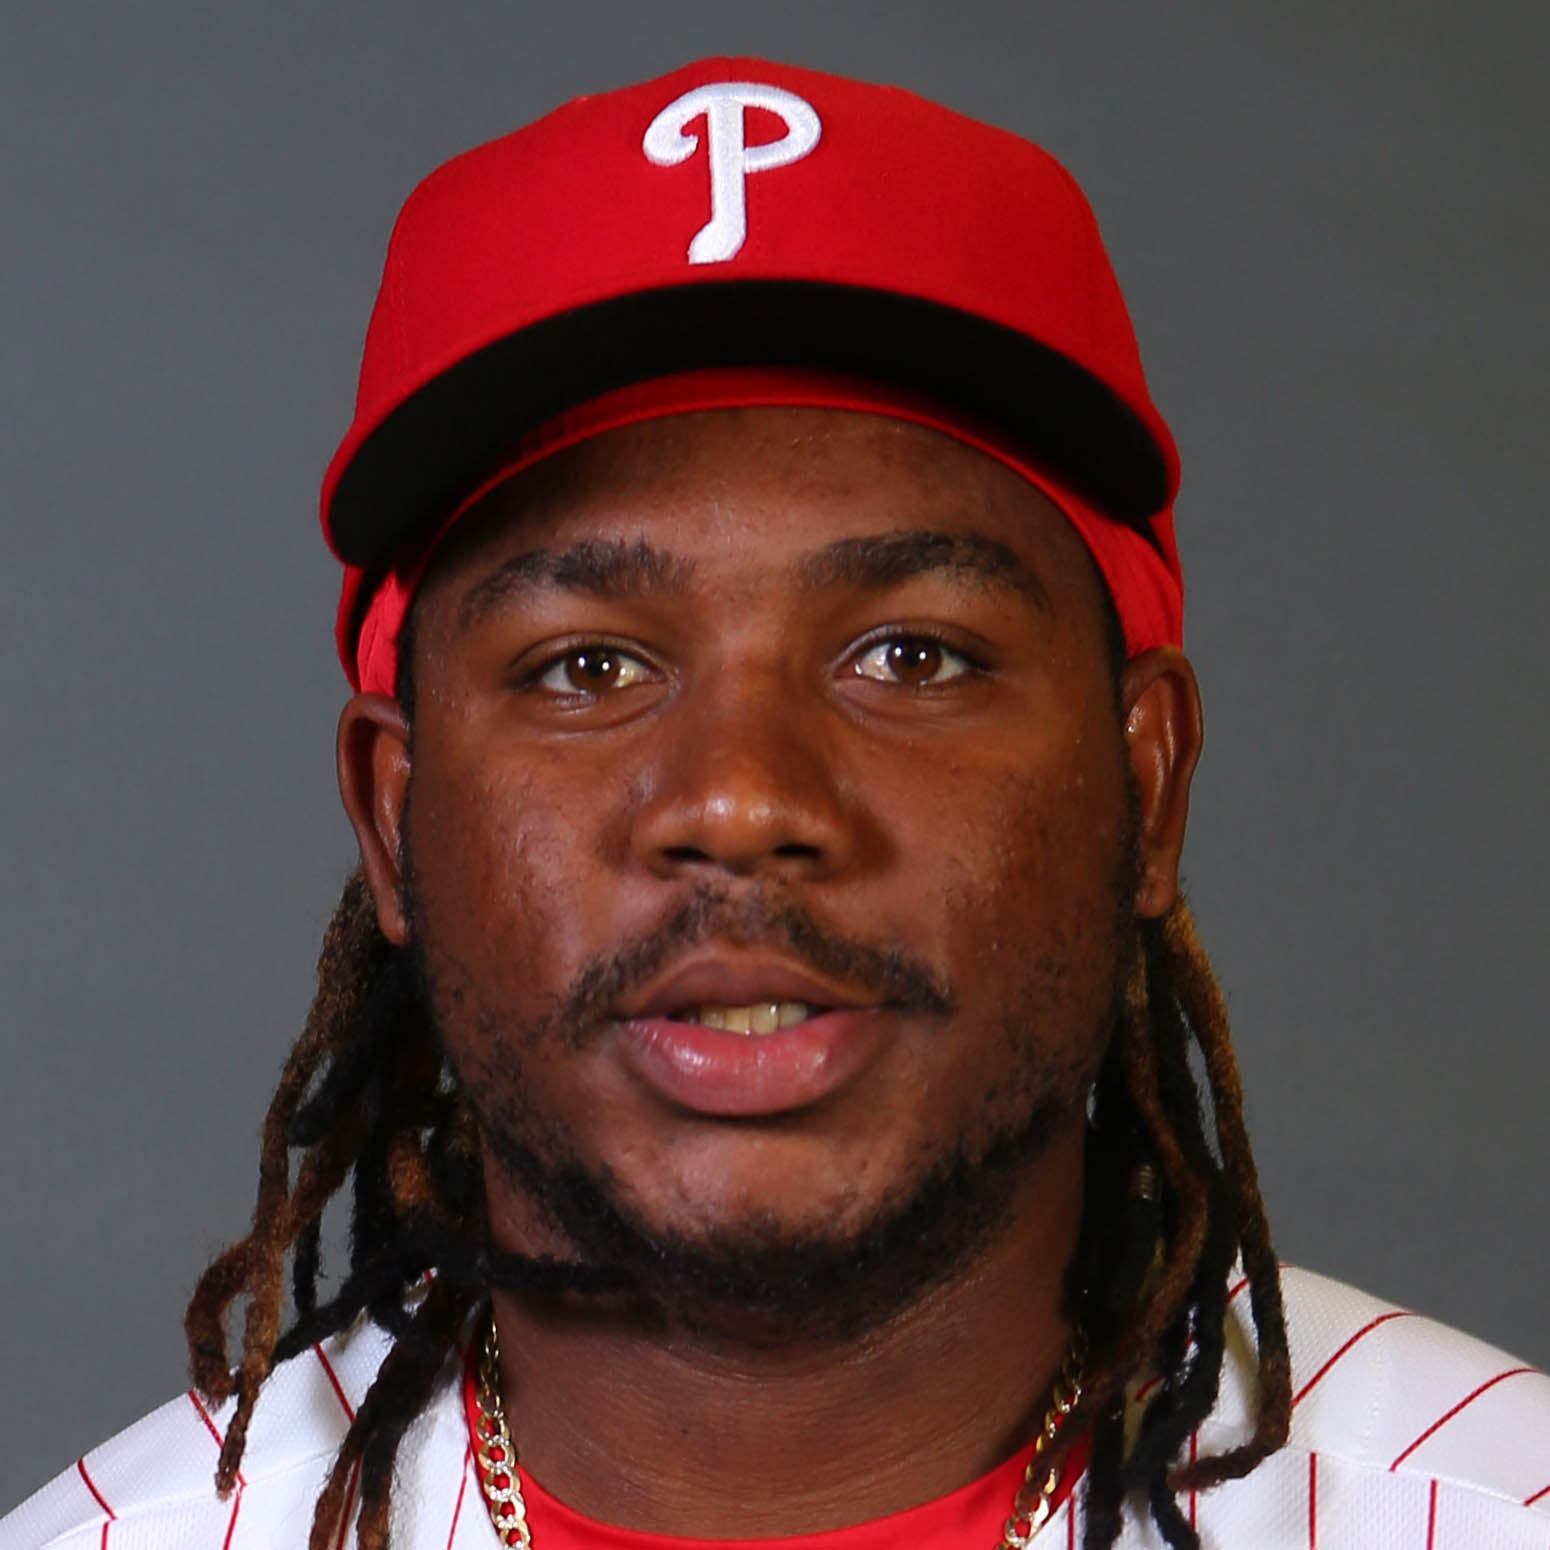 Maikel Franco Headshot